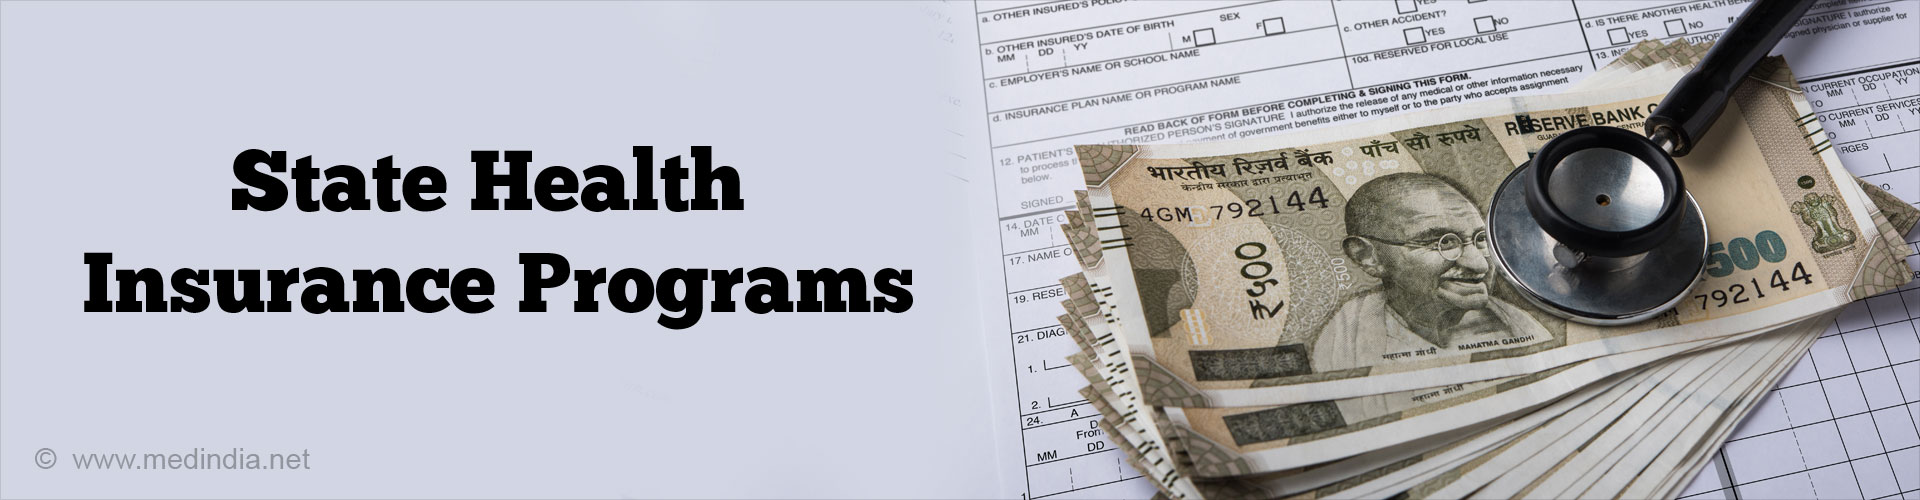 State Health Insurance Programs